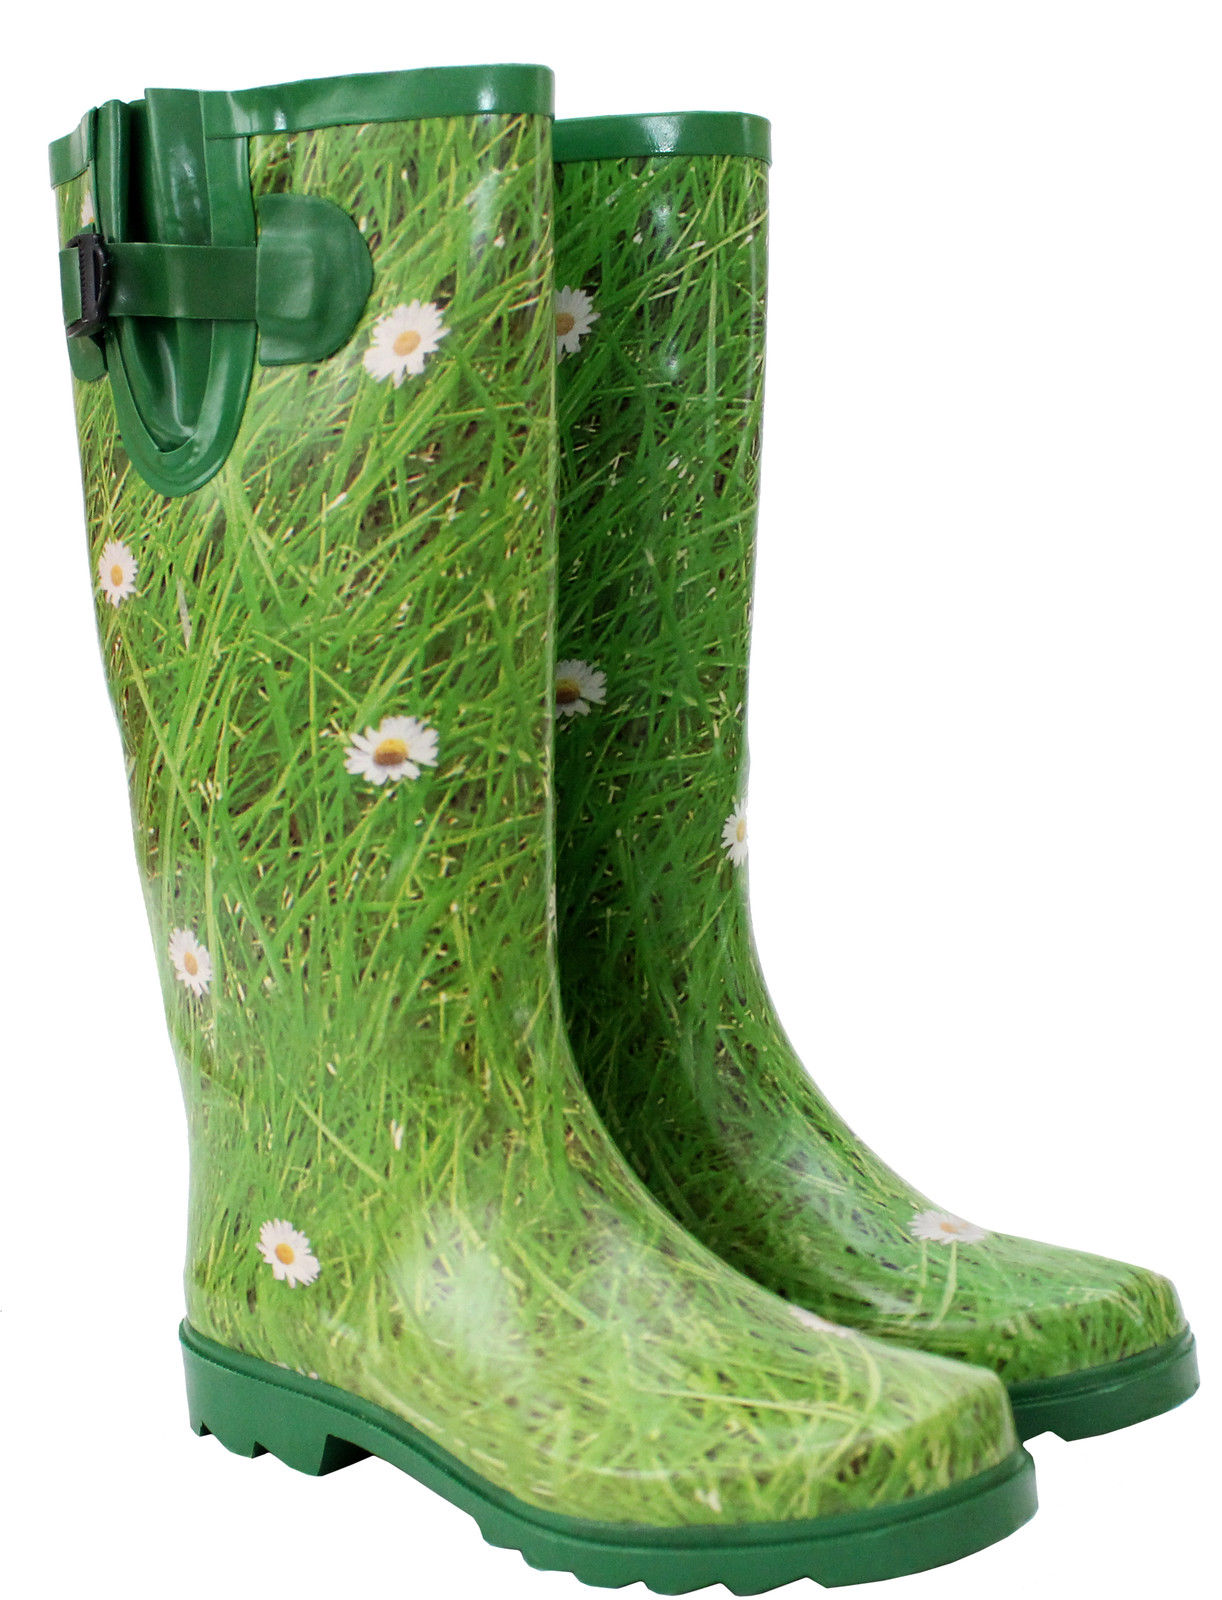 Perfect  Day Sale With Some Awesome Prices On Womens Winter Amp Rain Boots